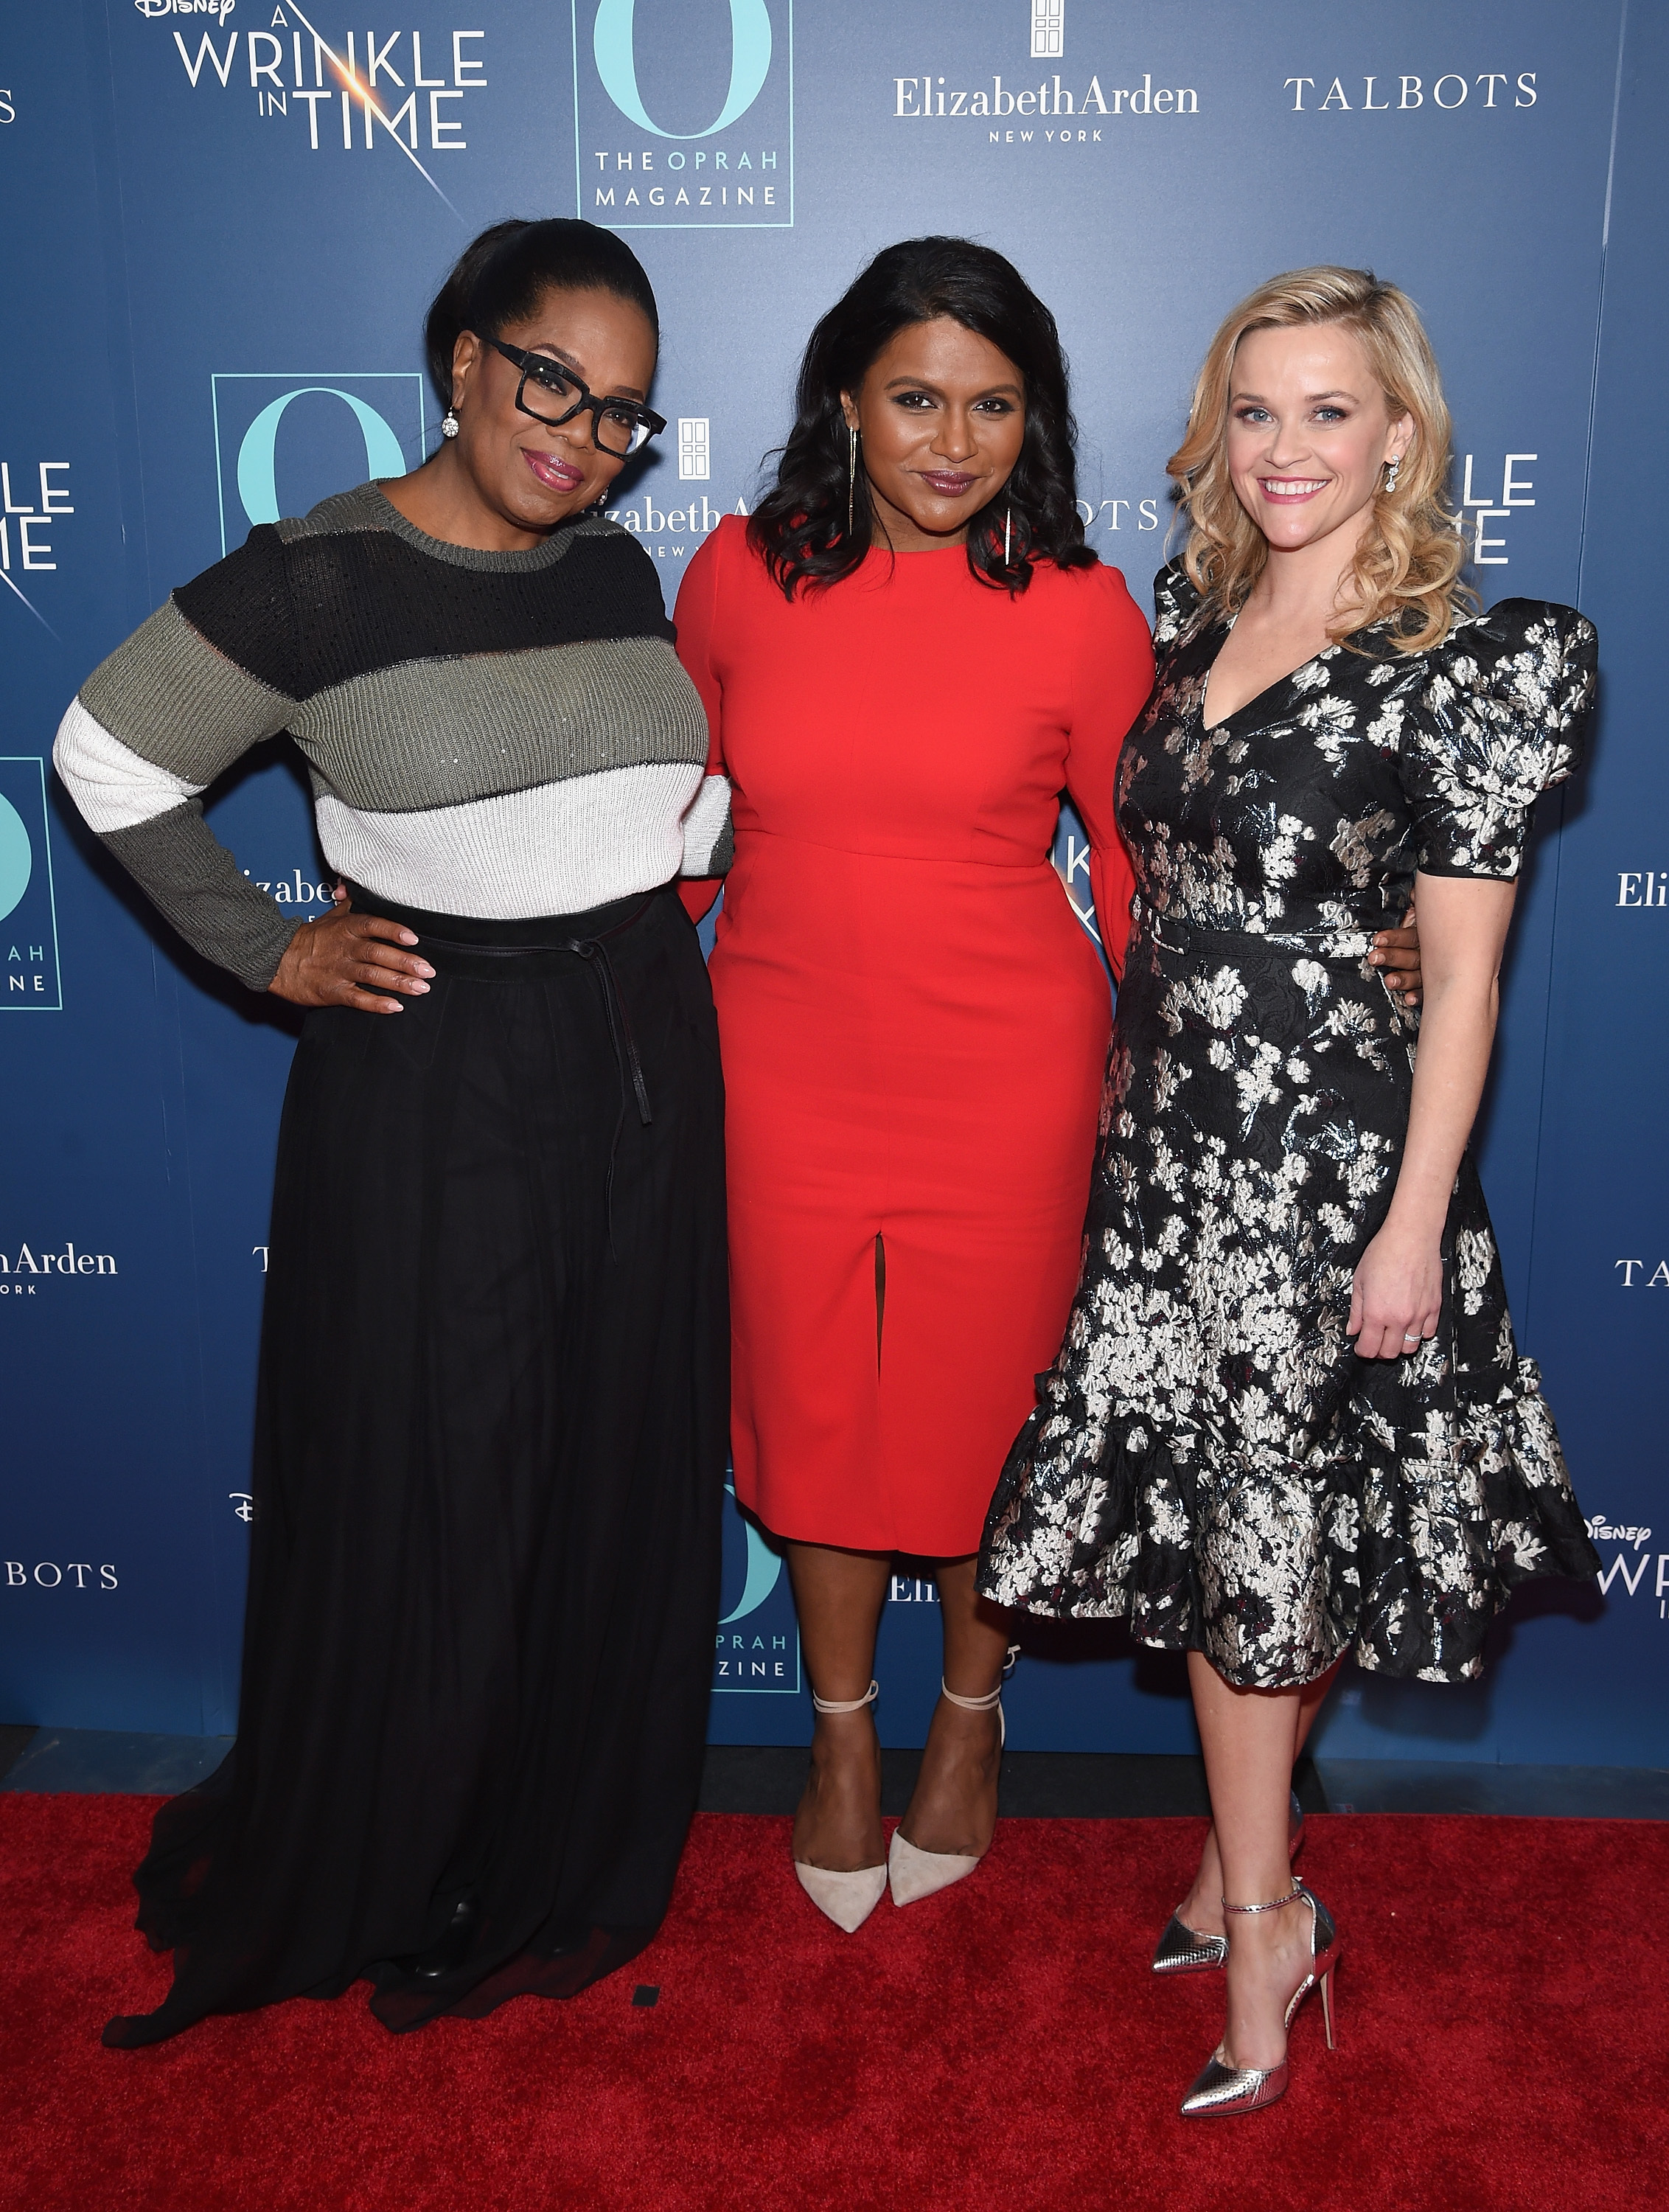 "Oprah Winfrey, Mindy Kaling and Reese Witherspoon attend a special screening of ""A Wrinkle in Time"" hosted by O, The Oprah Magazine at the Walter Reade Theater in New York City on March 7, 2018."